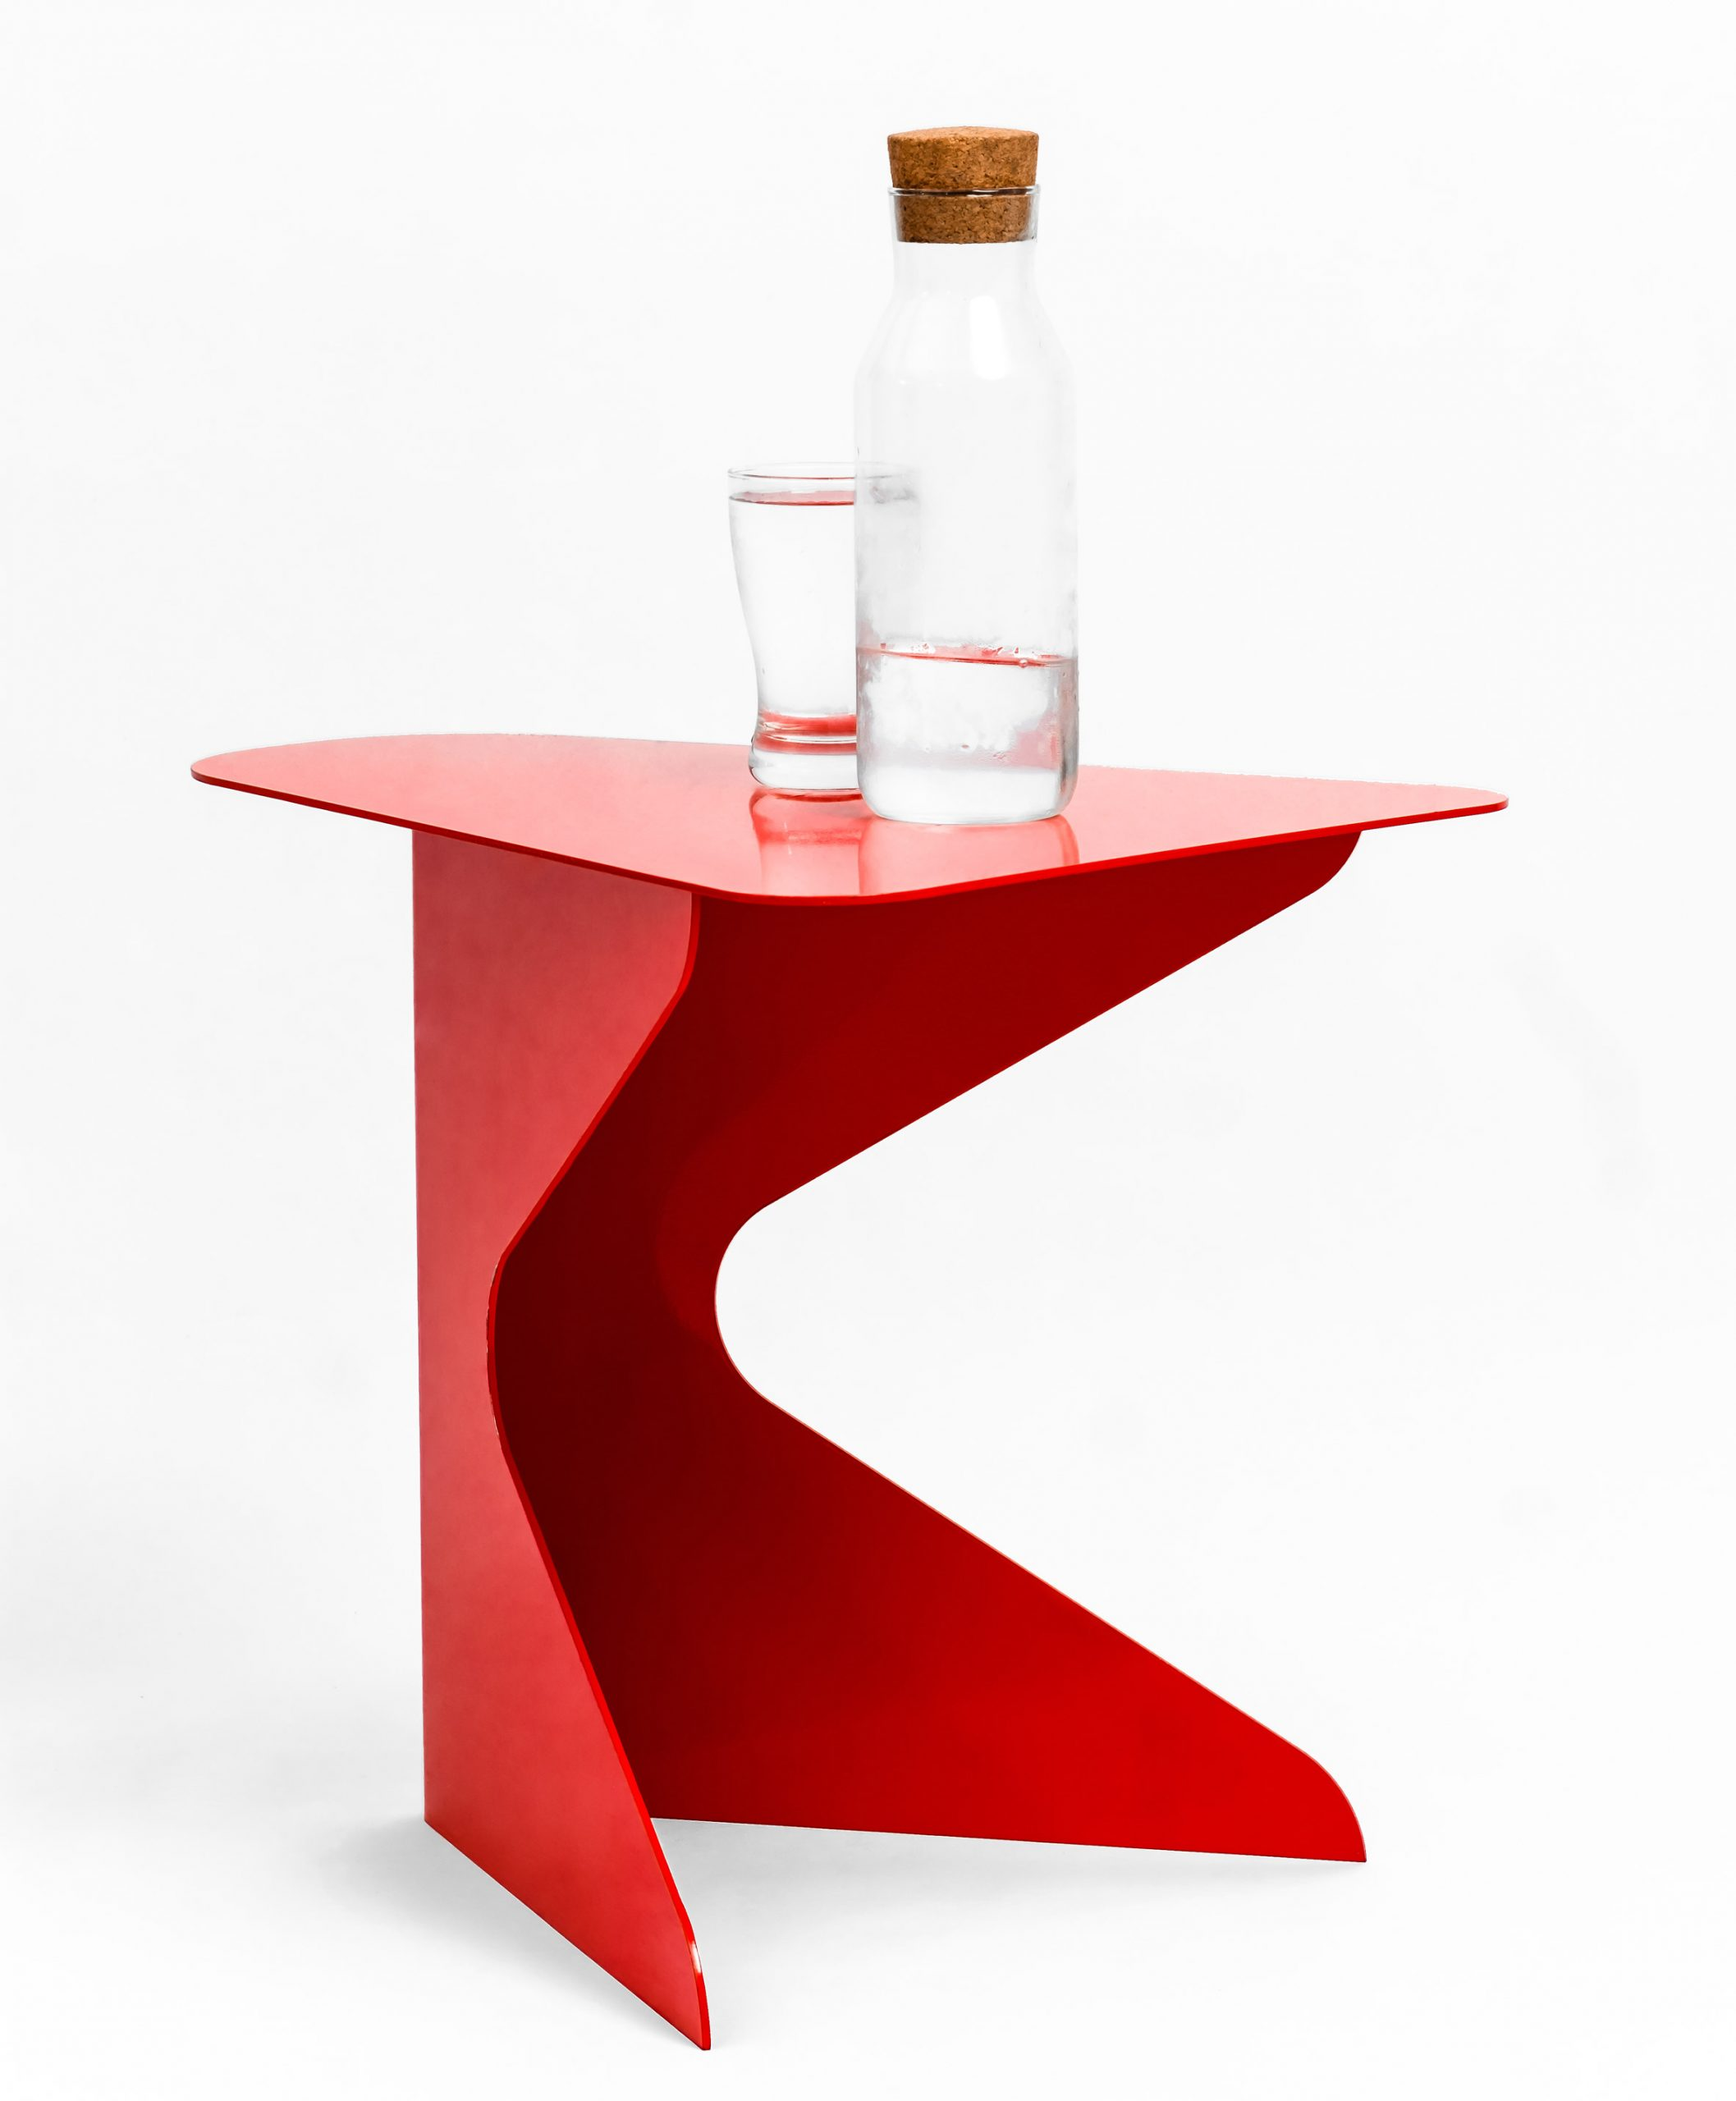 Africa by Design: LM Stool by NMBello Studio